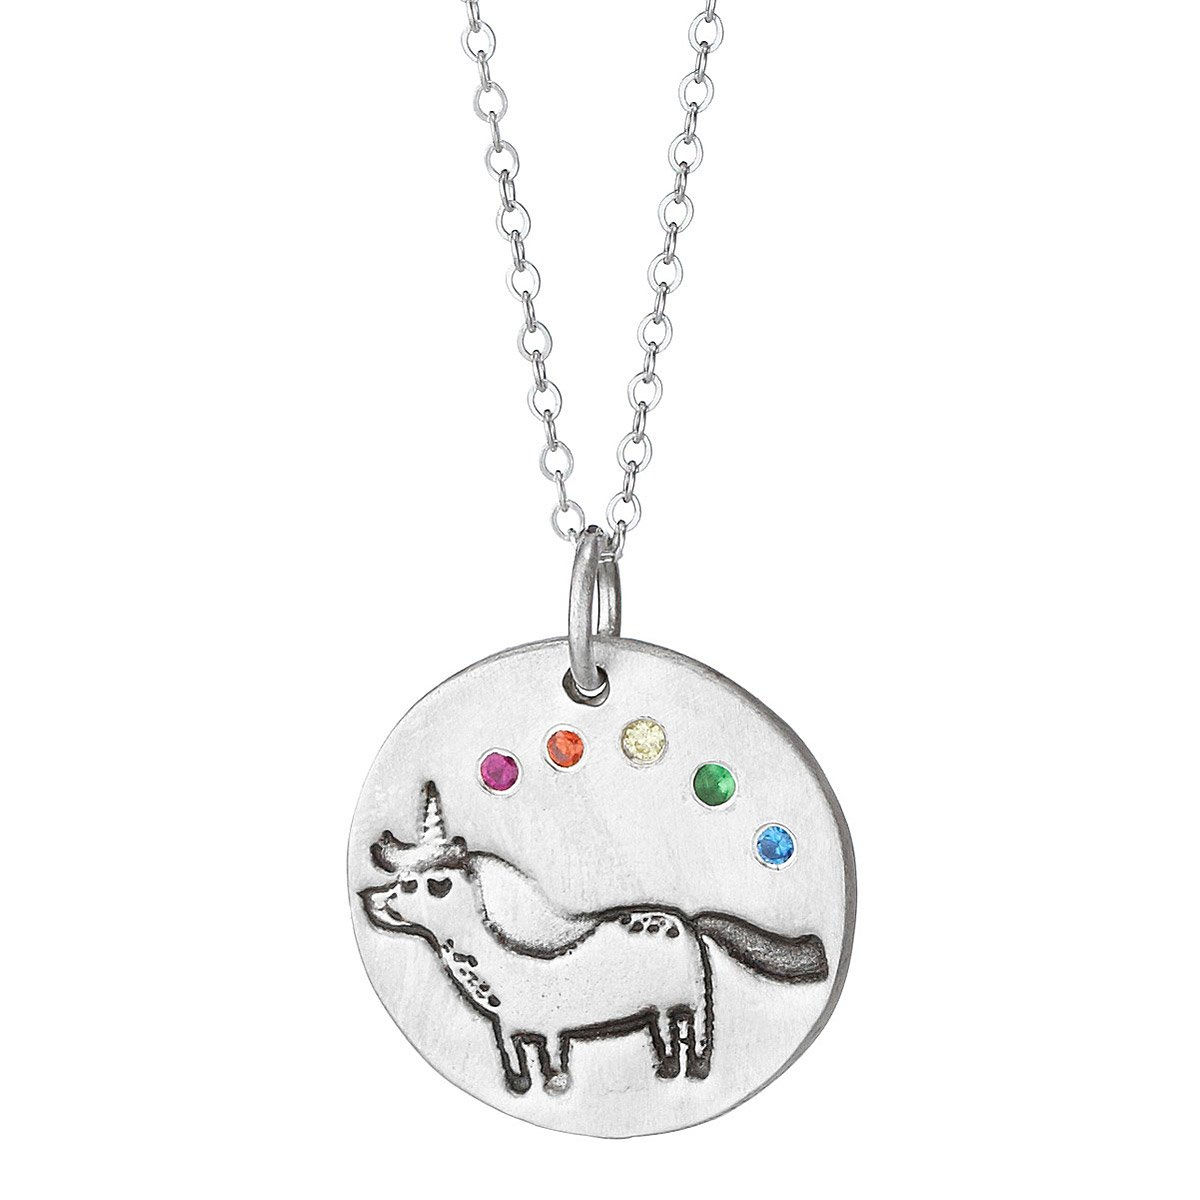 qlt fit necklace rainbow redesign view zoom hei constrain slide shop delicate anthropologie